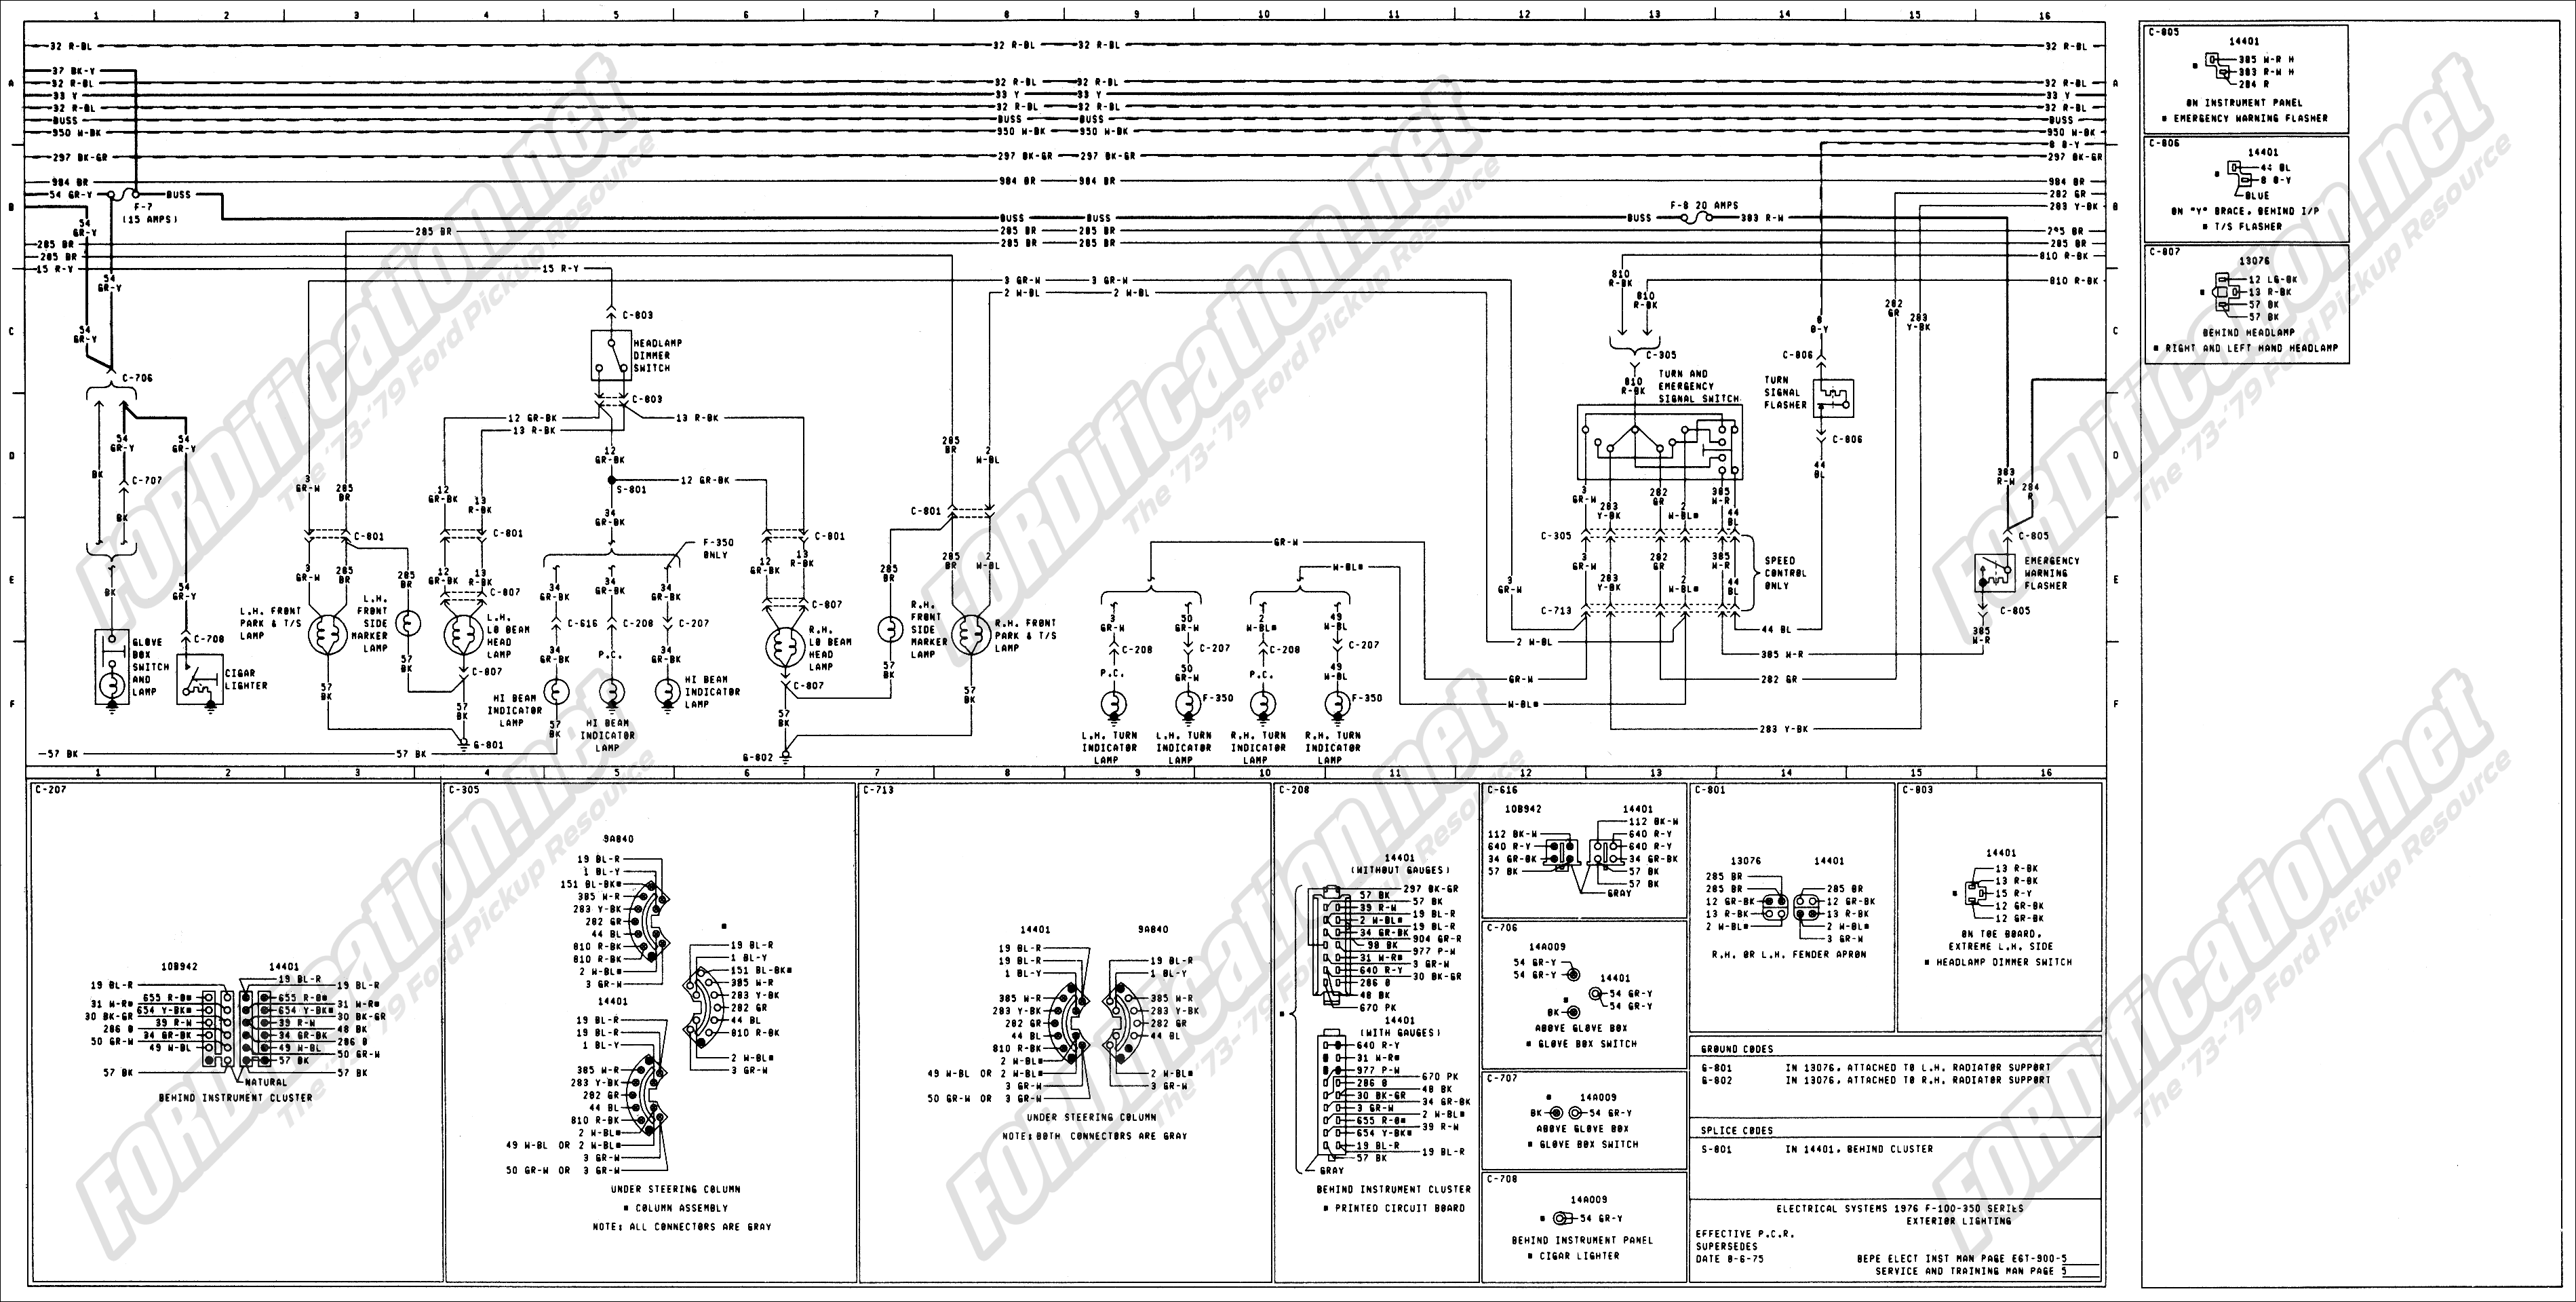 1973 1979 ford truck wiring diagrams schematics fordification net rh fordification net 1978 ford bronco turn signal wiring diagram 1978 ford bronco turn signal wiring diagram